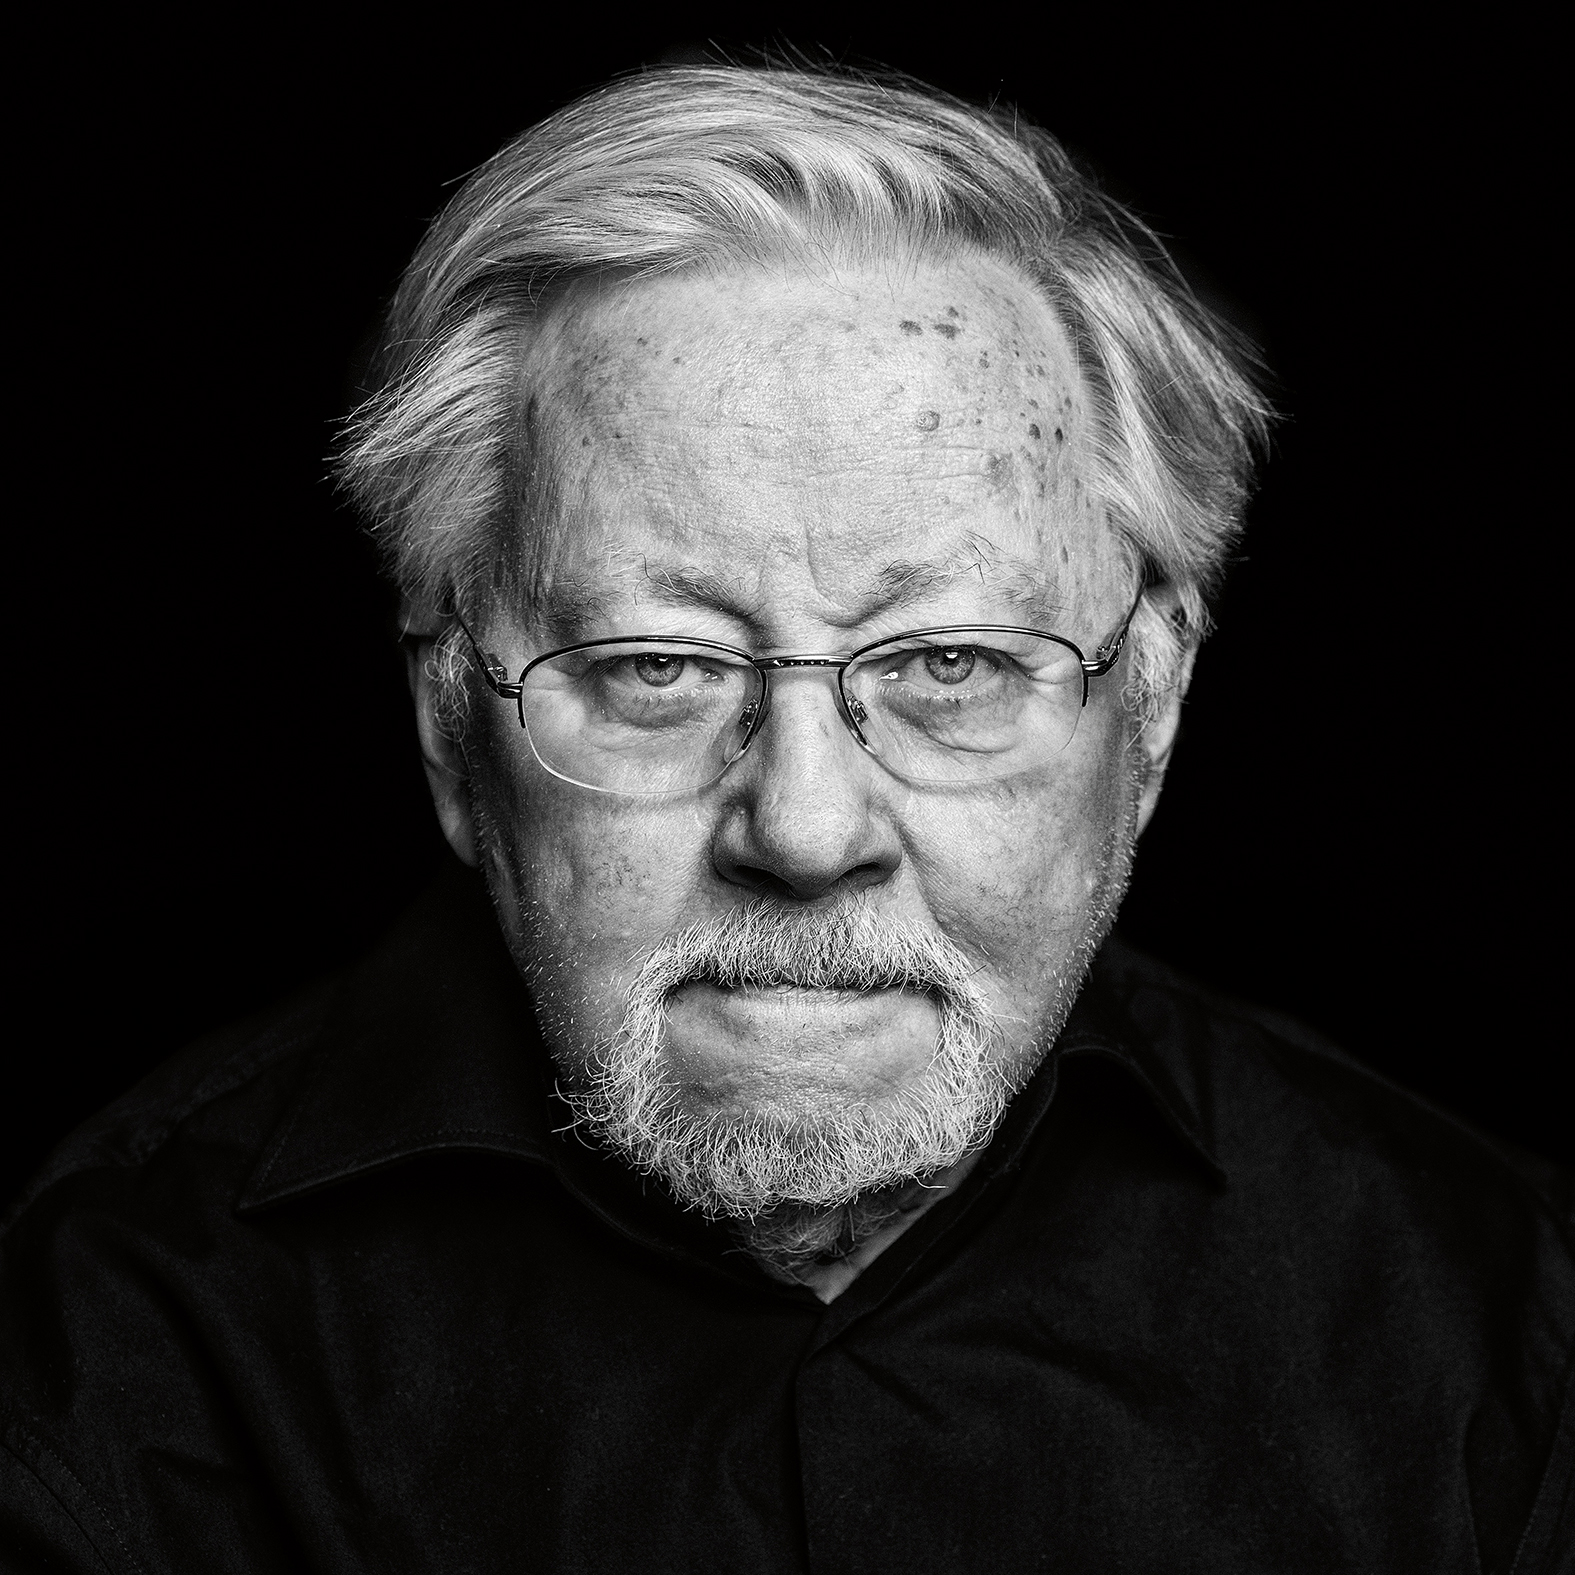 Photo of Vytautas Landsbergis in Lithuania